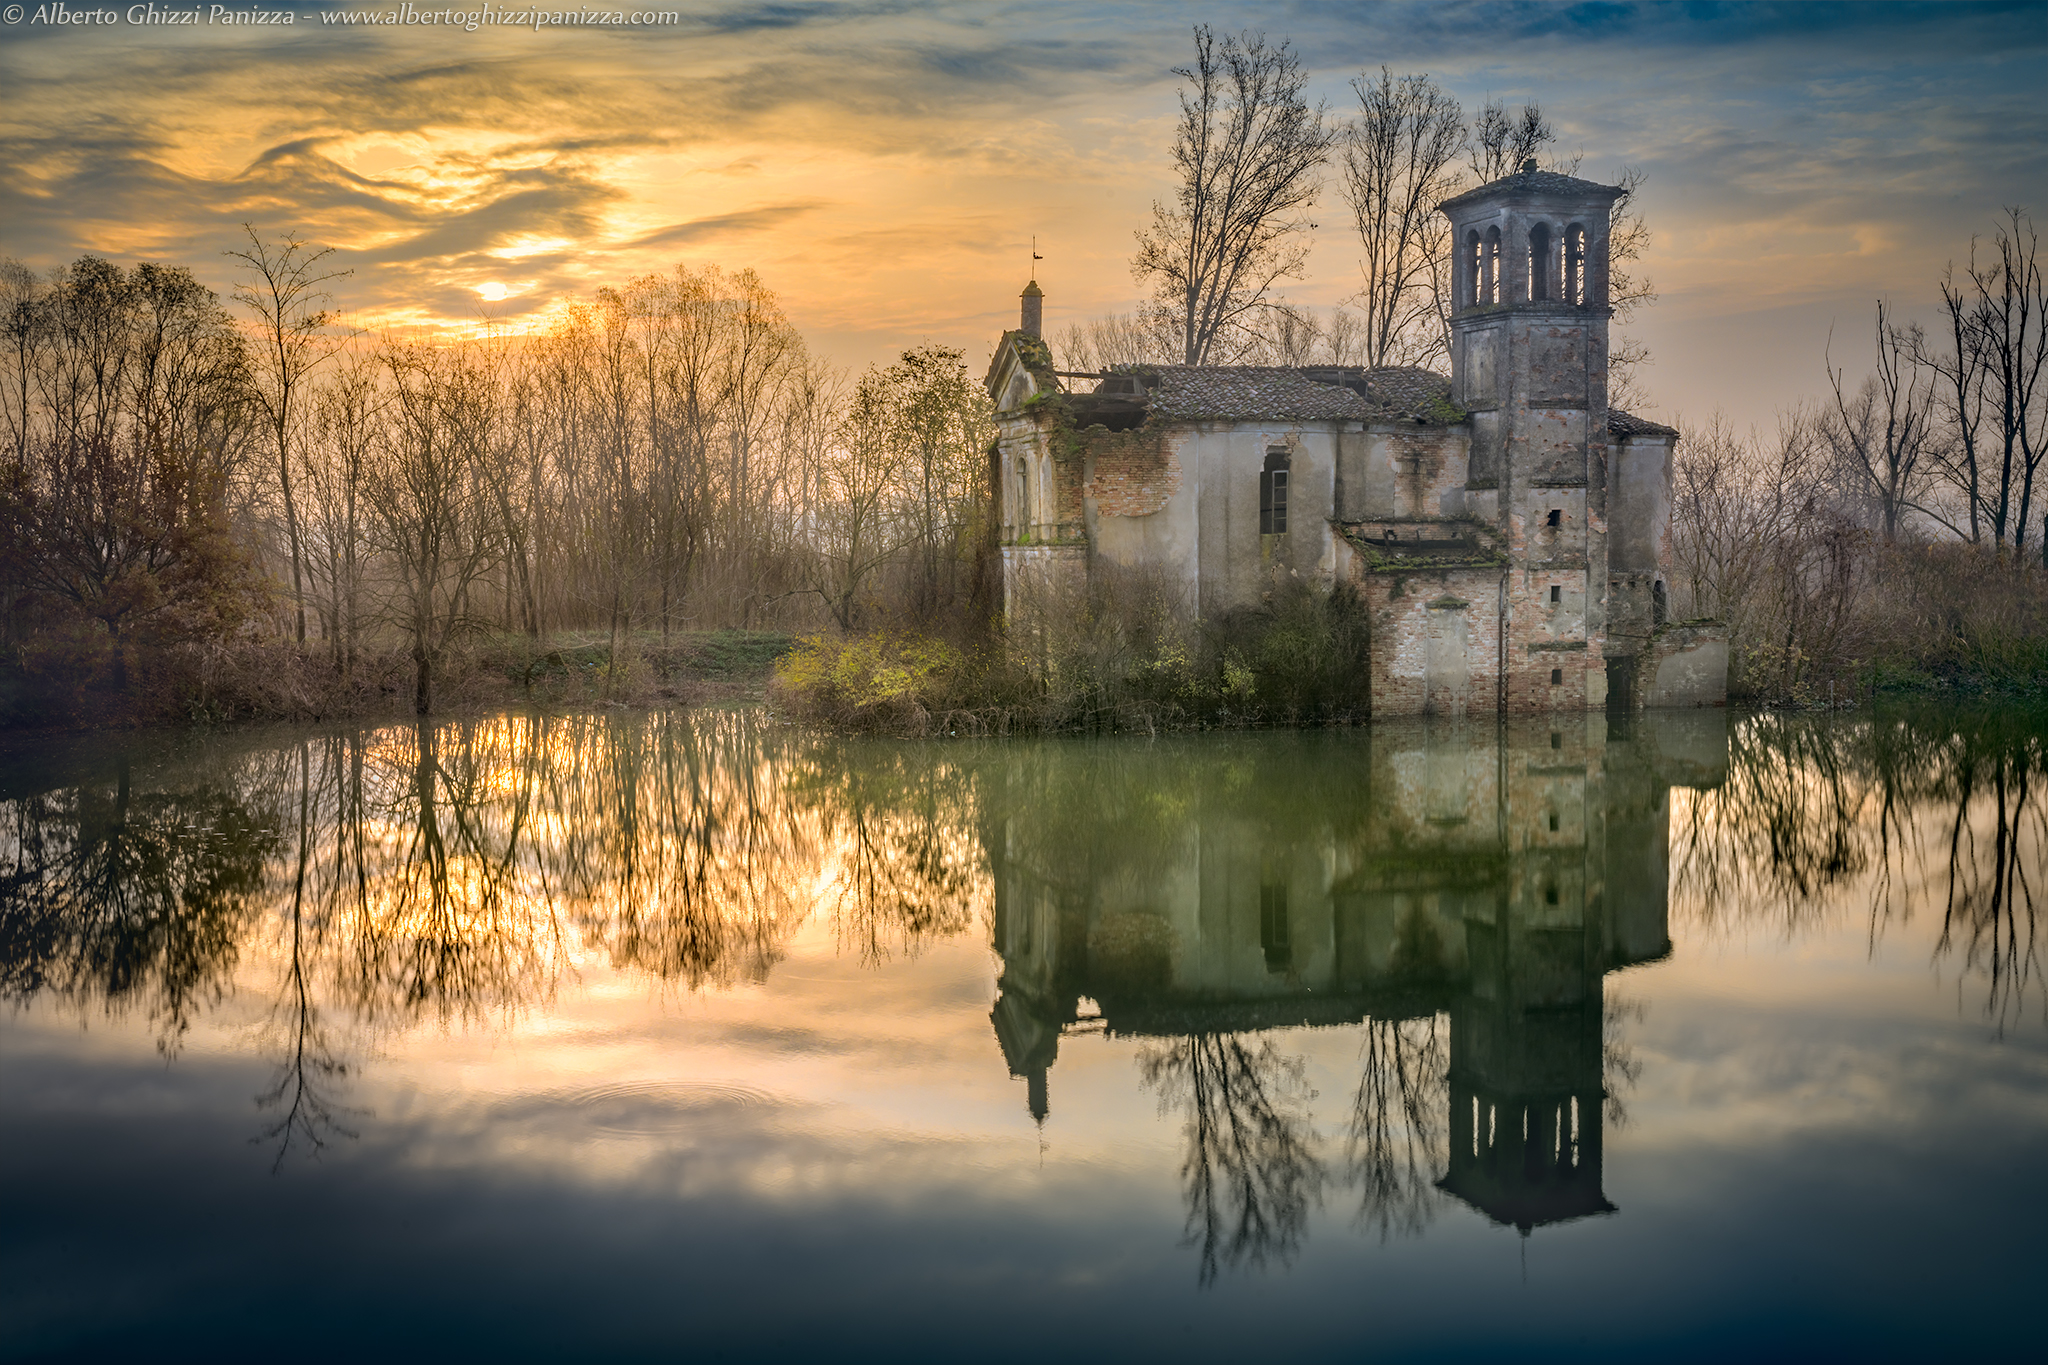 Abandoned and flooded...